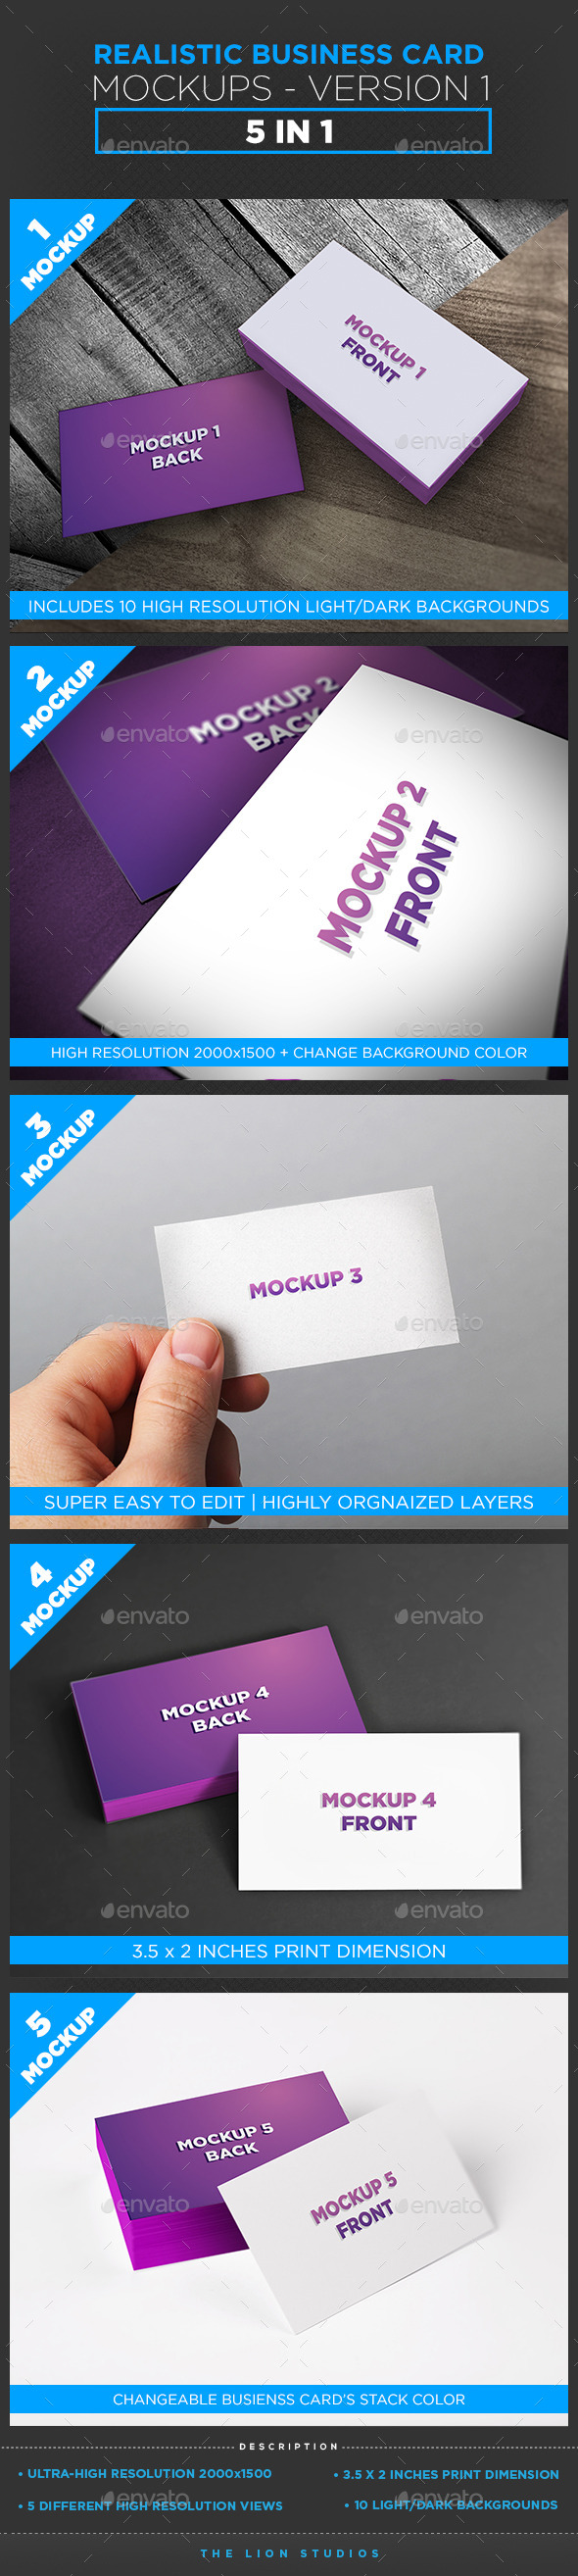 Realistic Business Card Mockups - Version 1 - Business Cards Print